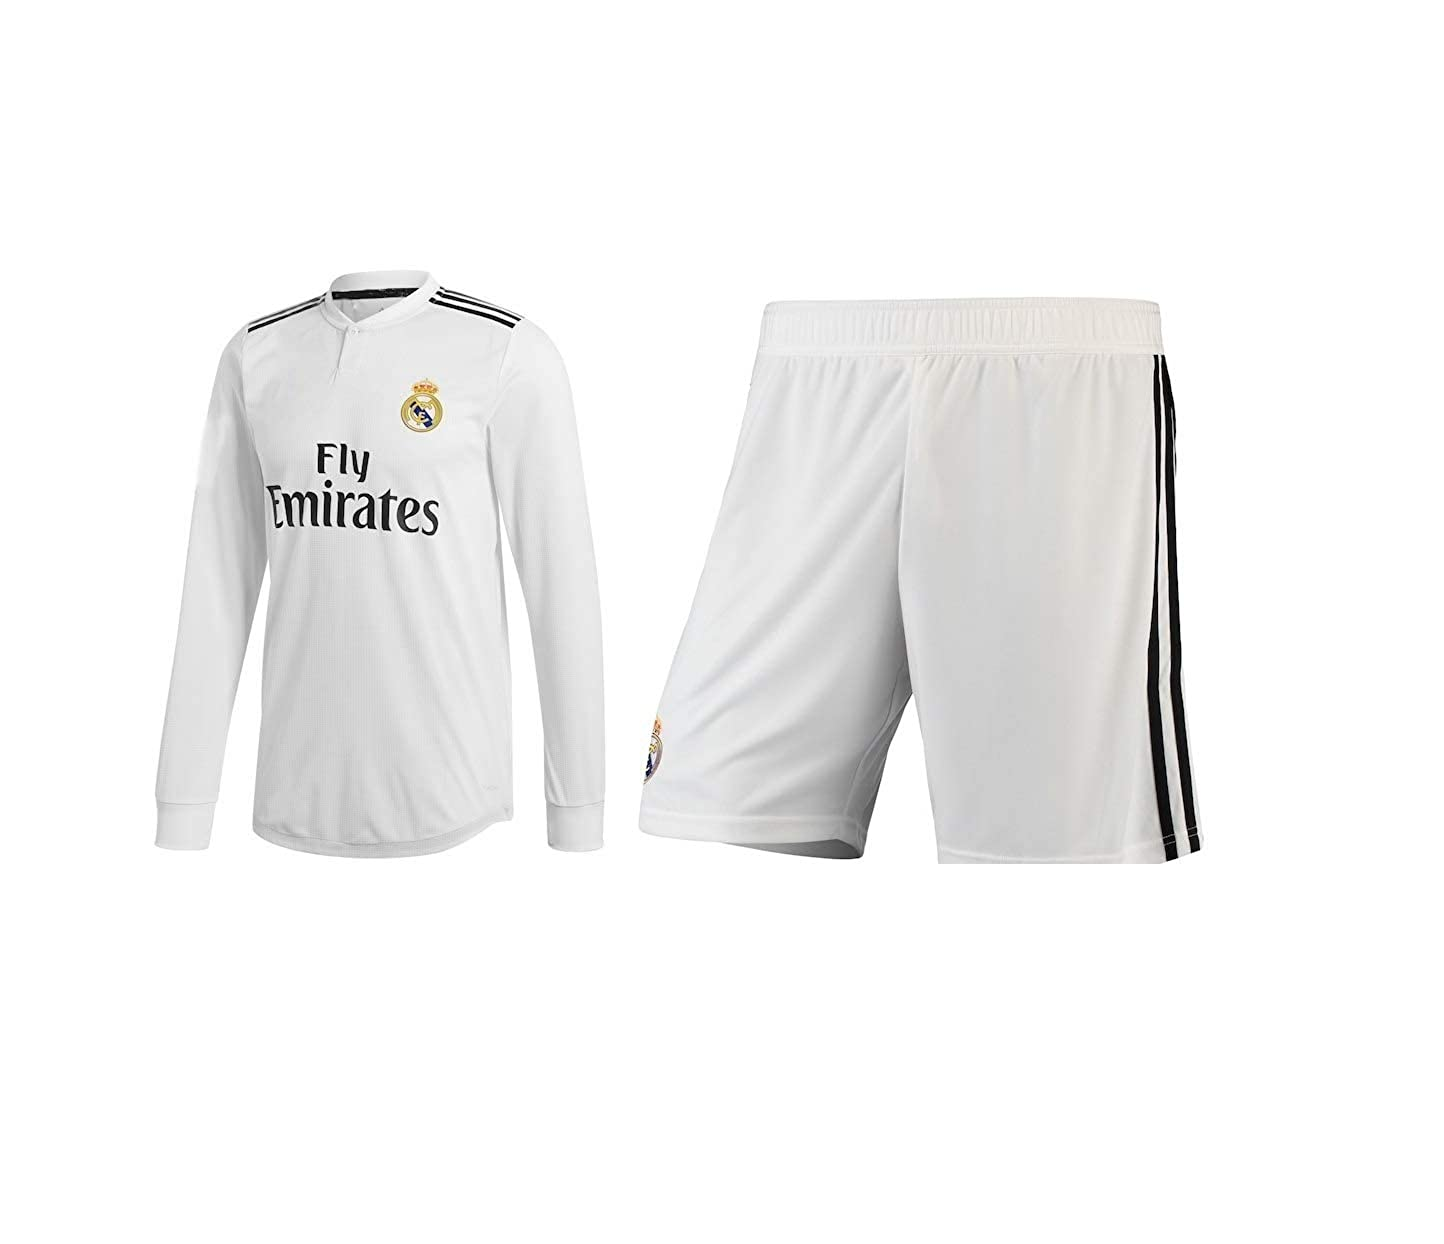 90661e5b78e NAVEX RAL Madrid Full Sleeve Jersey FIFA 2018-19 (Large)  Amazon.in   Clothing   Accessories